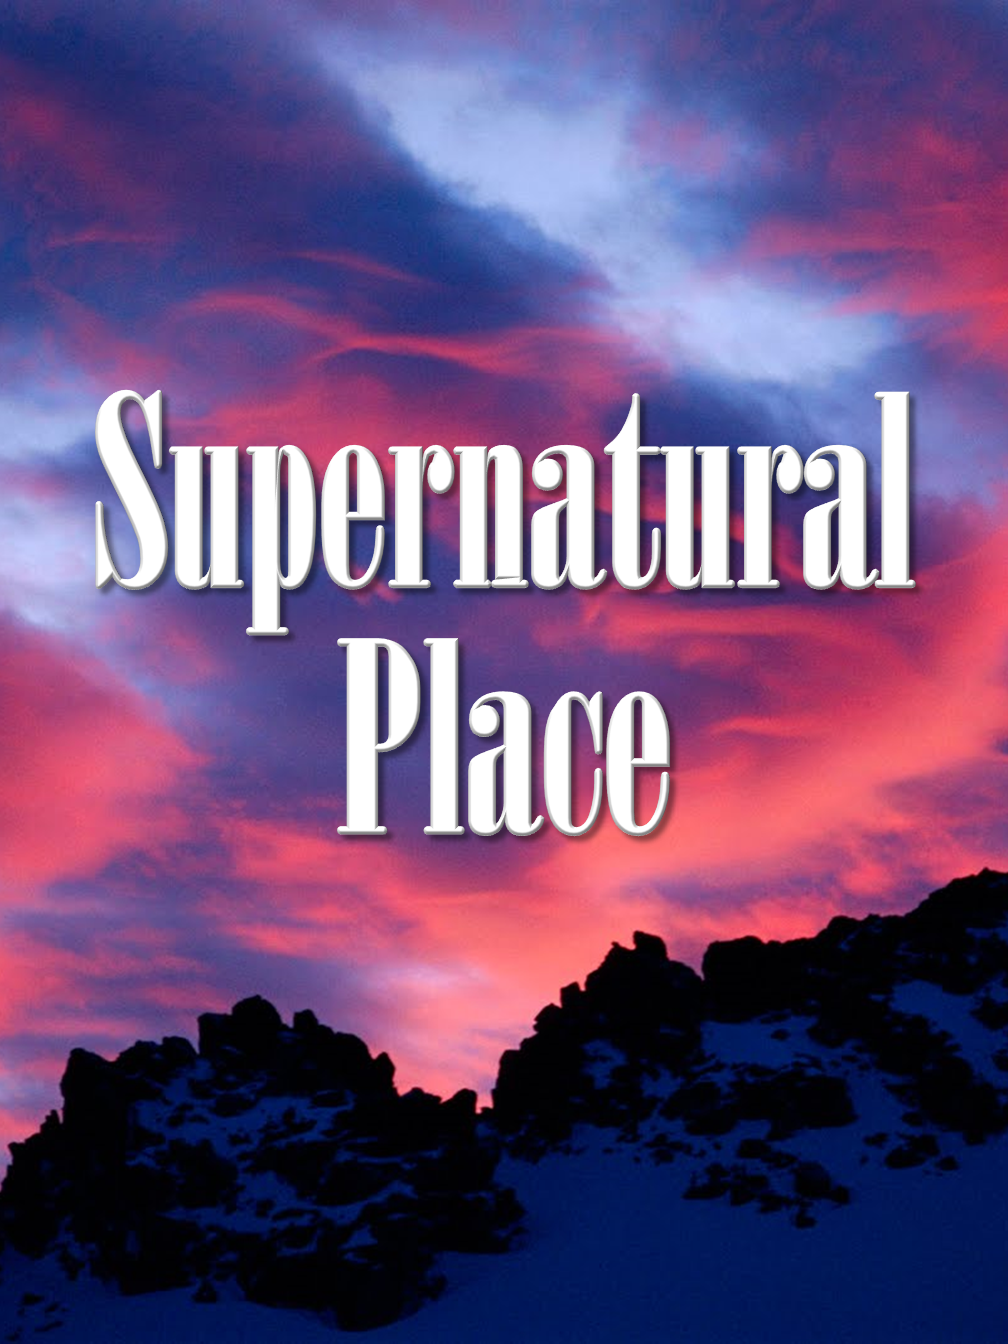 Supernatural Place!